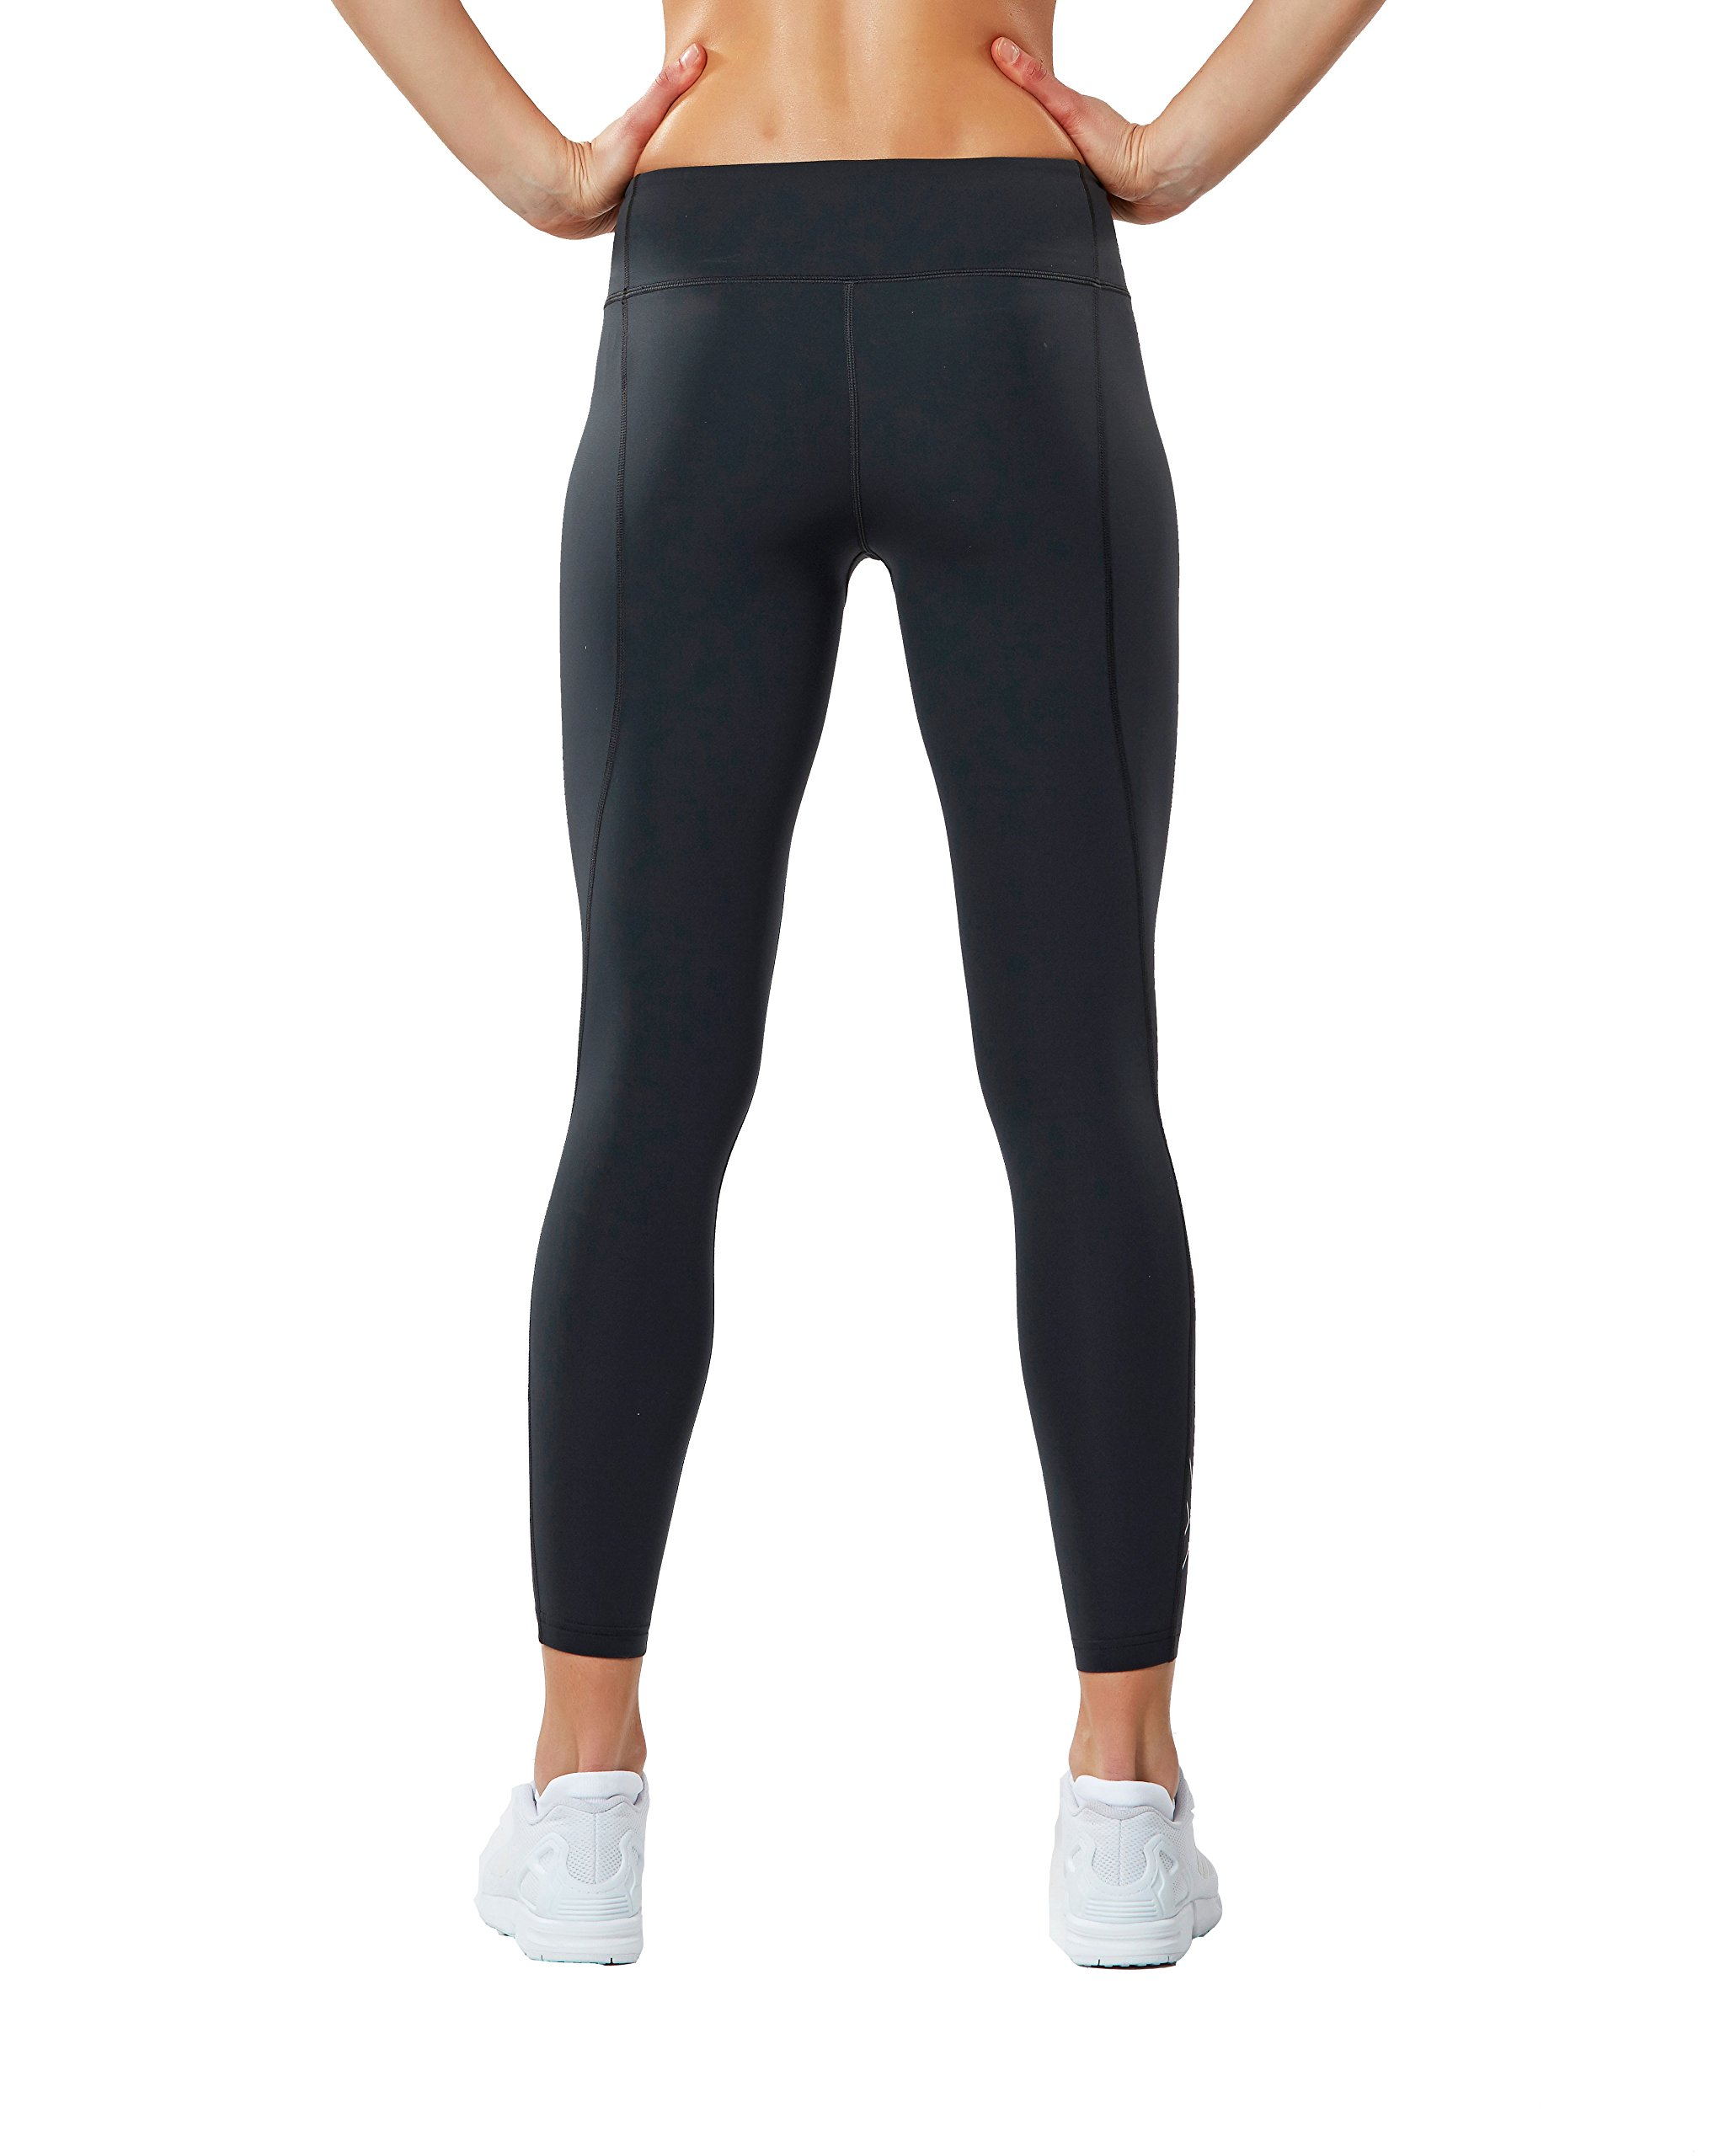 2XU Women's Fitness Compression Tights, Dark Charcoal/Silver, Medium/Tall by 2XU (Image #3)